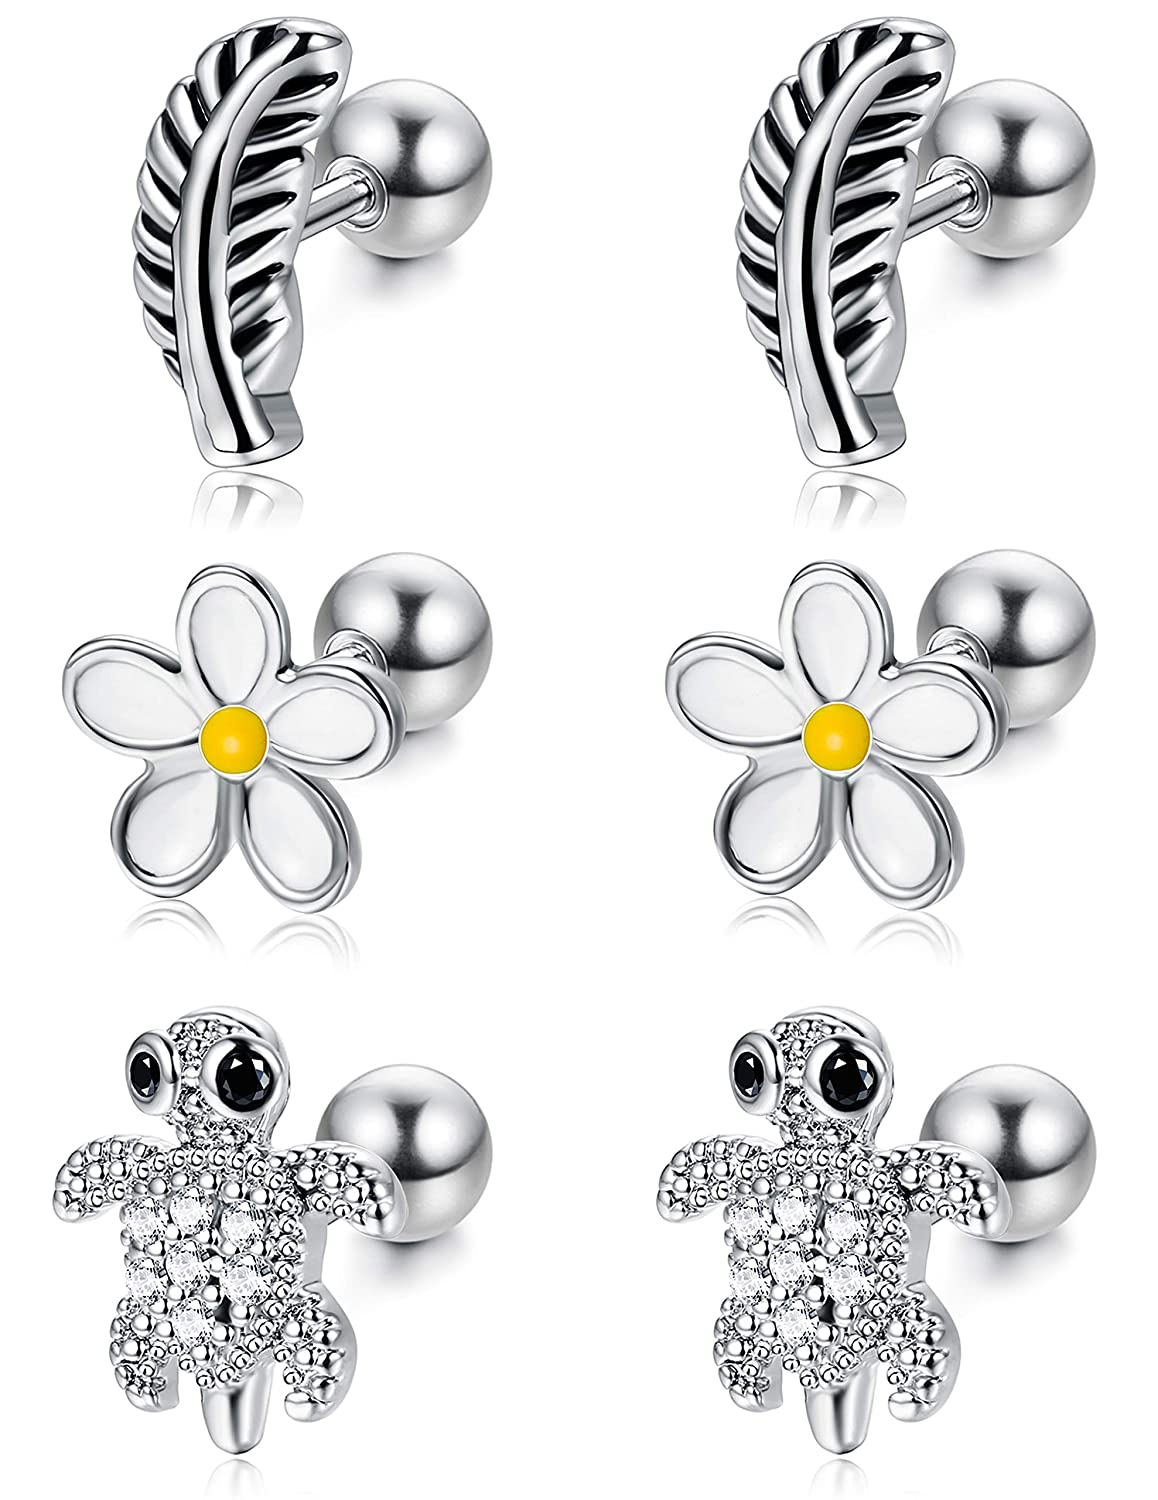 ef9220dc5d8eb ORAZIO Cartilage Earrings for Women Girls Stainless Steel Tiny Feather  Turtle Flower Stud Earrings Helix Tragus Barbell Piercing Jewelry 16G 18G